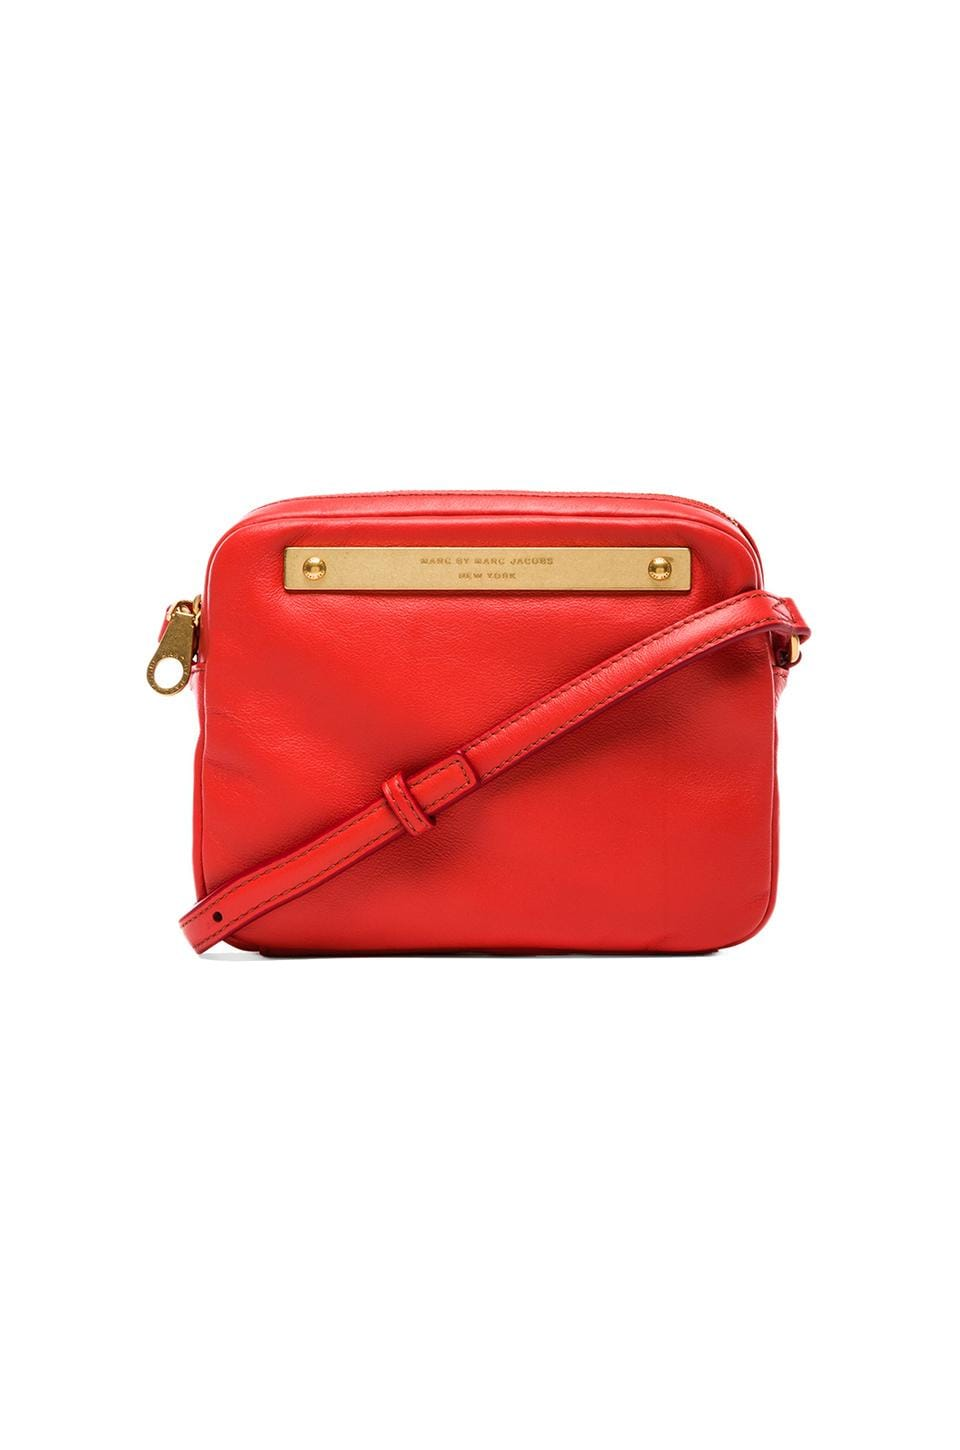 Marc by Marc Jacobs Goodbye Columbus Mireu Crossbody in Vibrant Orange